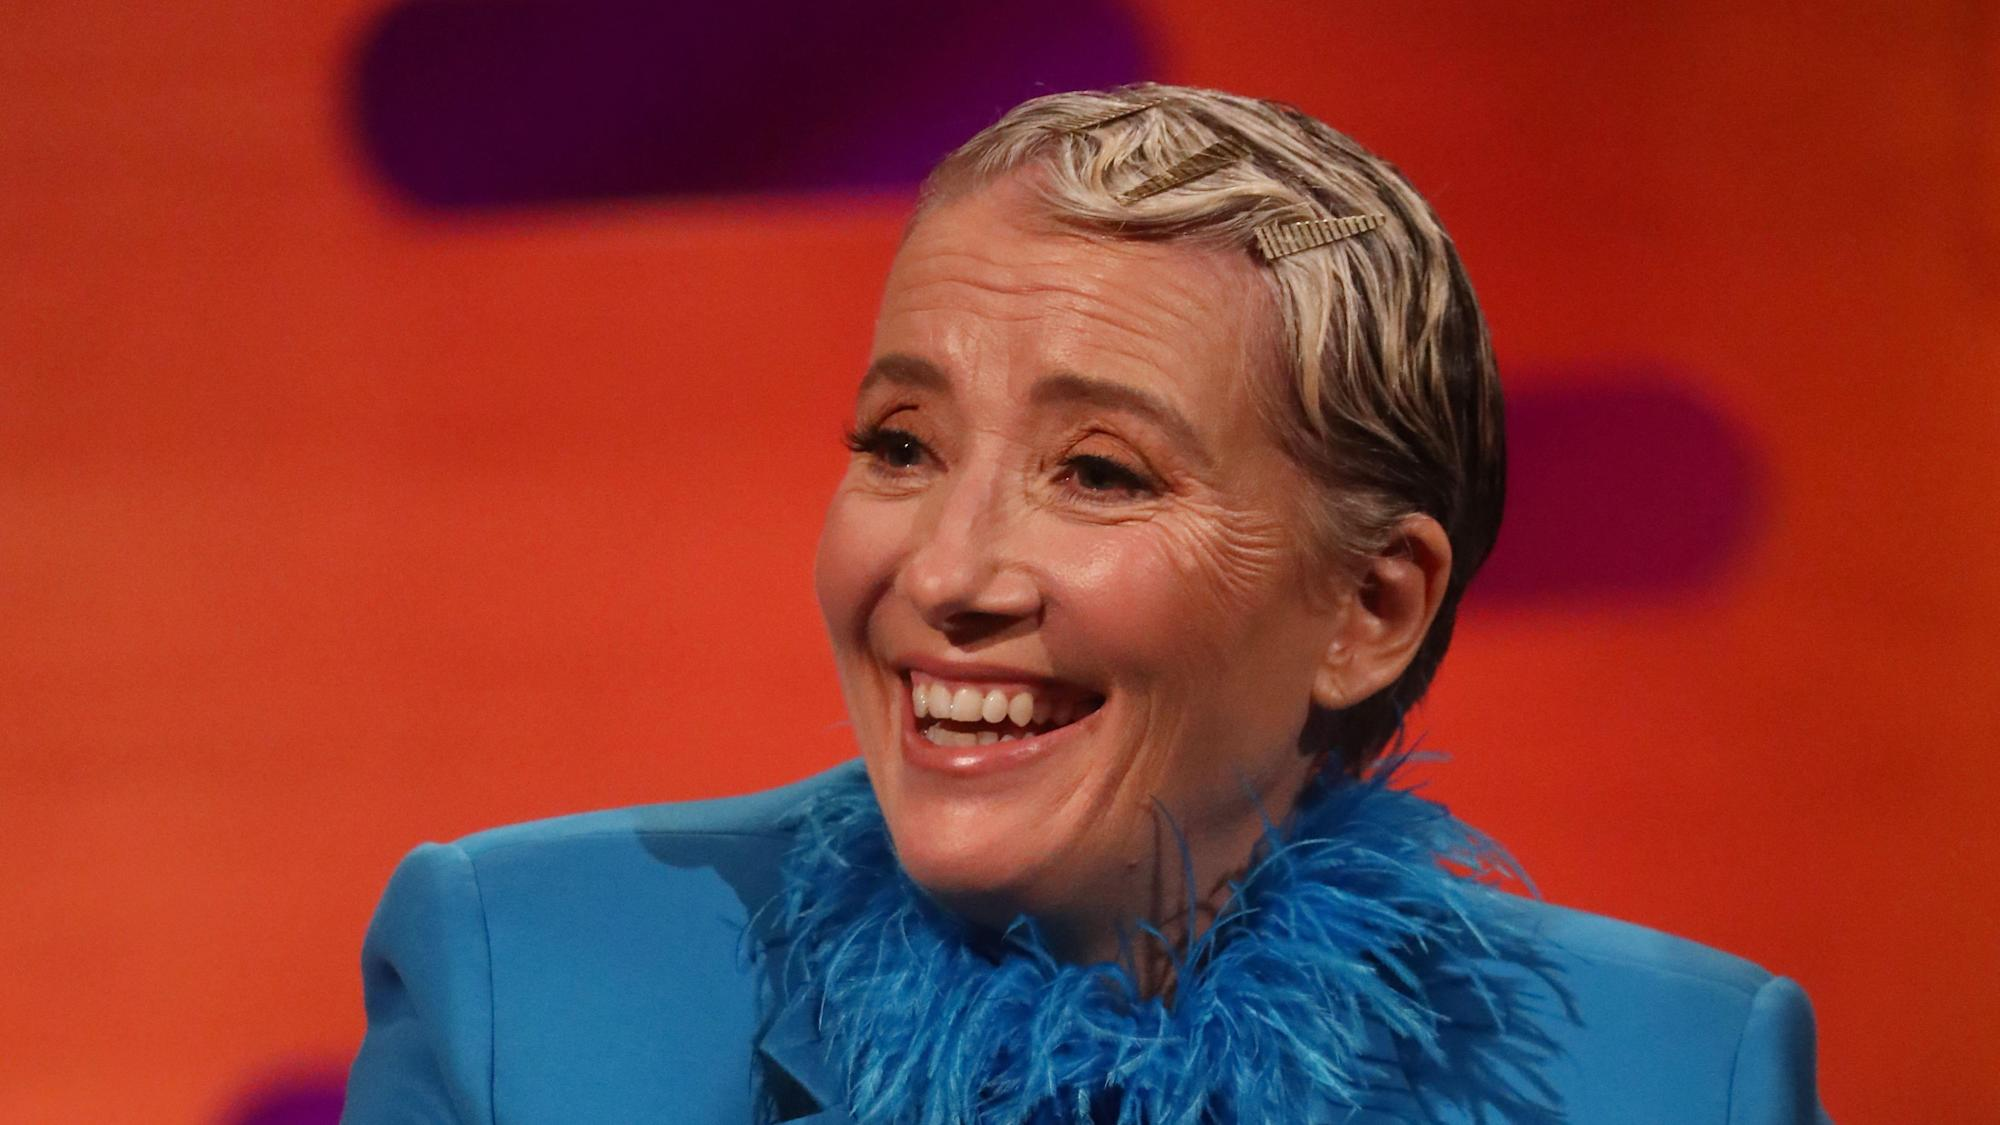 Emma Thompson: I faced greater criticism over XR support due to age and station